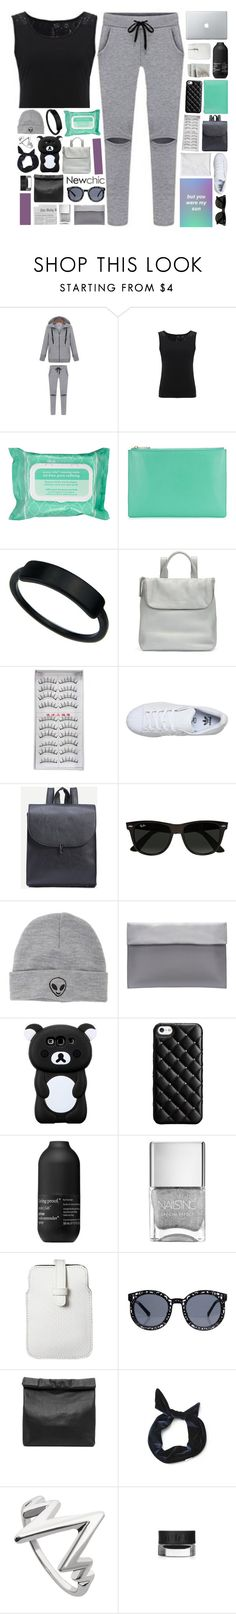 """""""synesthesia / newchic style"""" by pheachy ❤ liked on Polyvore featuring Ole Henriksen, Whistles, adidas, Ray-Ban, With Love From CA, Case-Mate, Living Proof, Mossimo and Marie Turnor"""